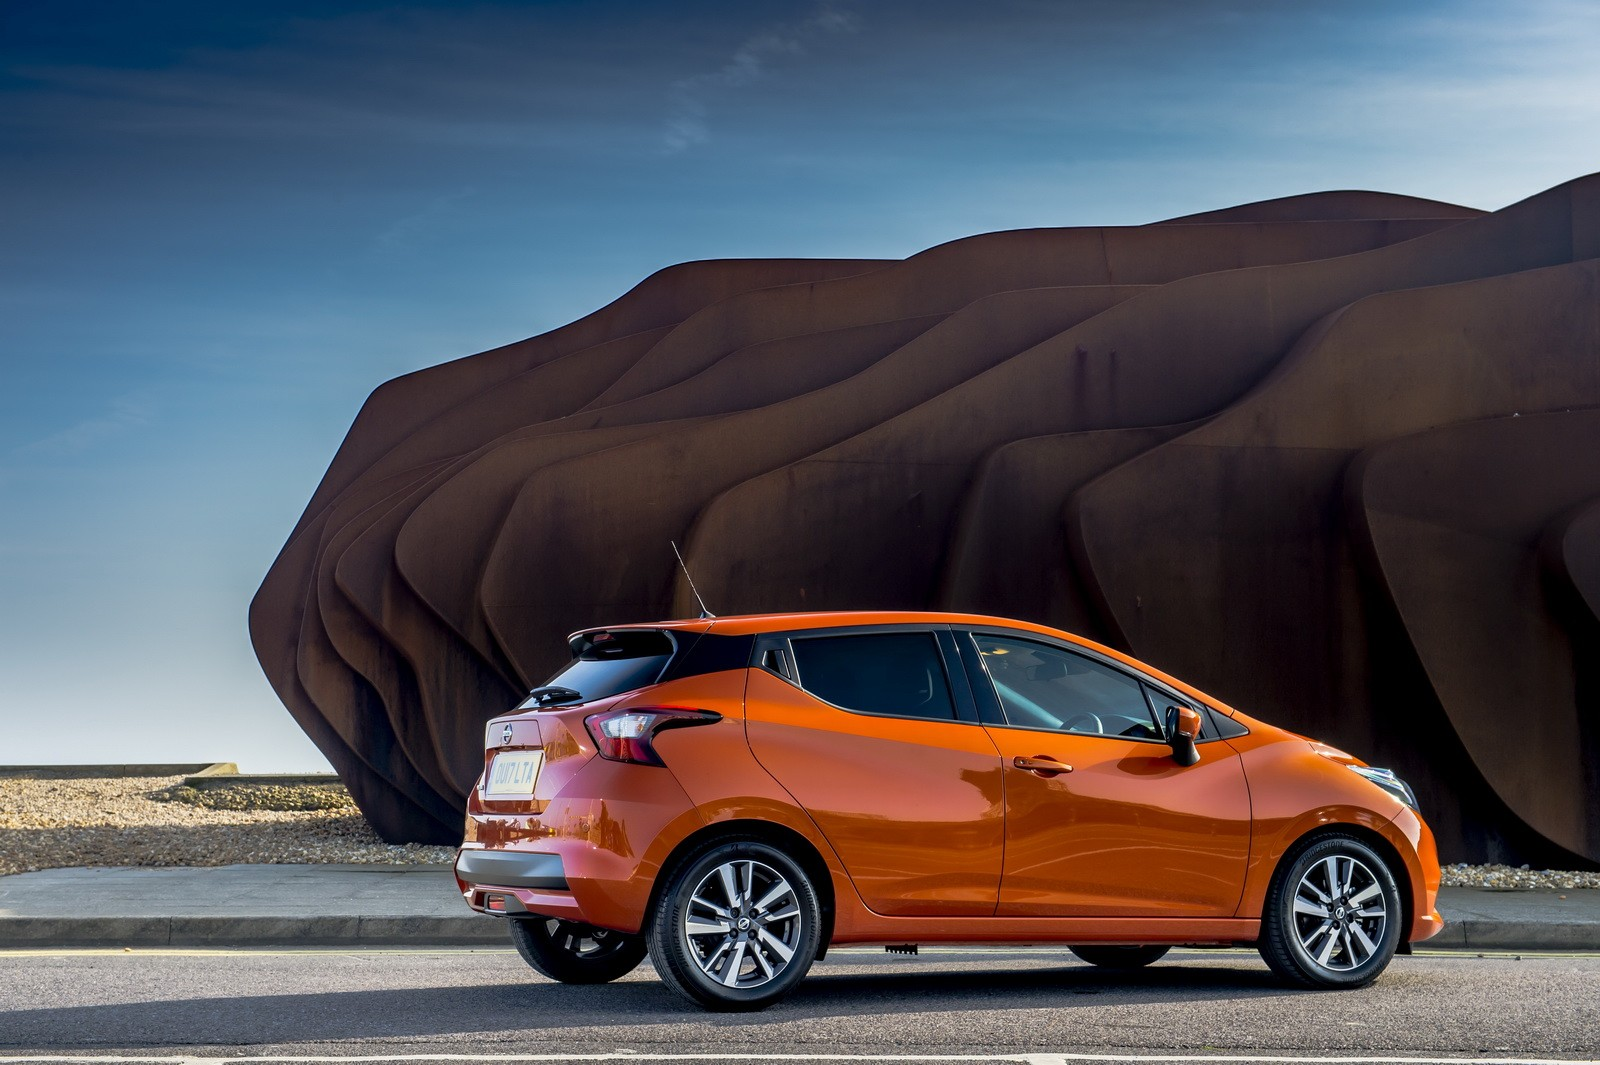 2017 Nissan Micra Gets Renault S 70 Hp 1 0 Liter Engine